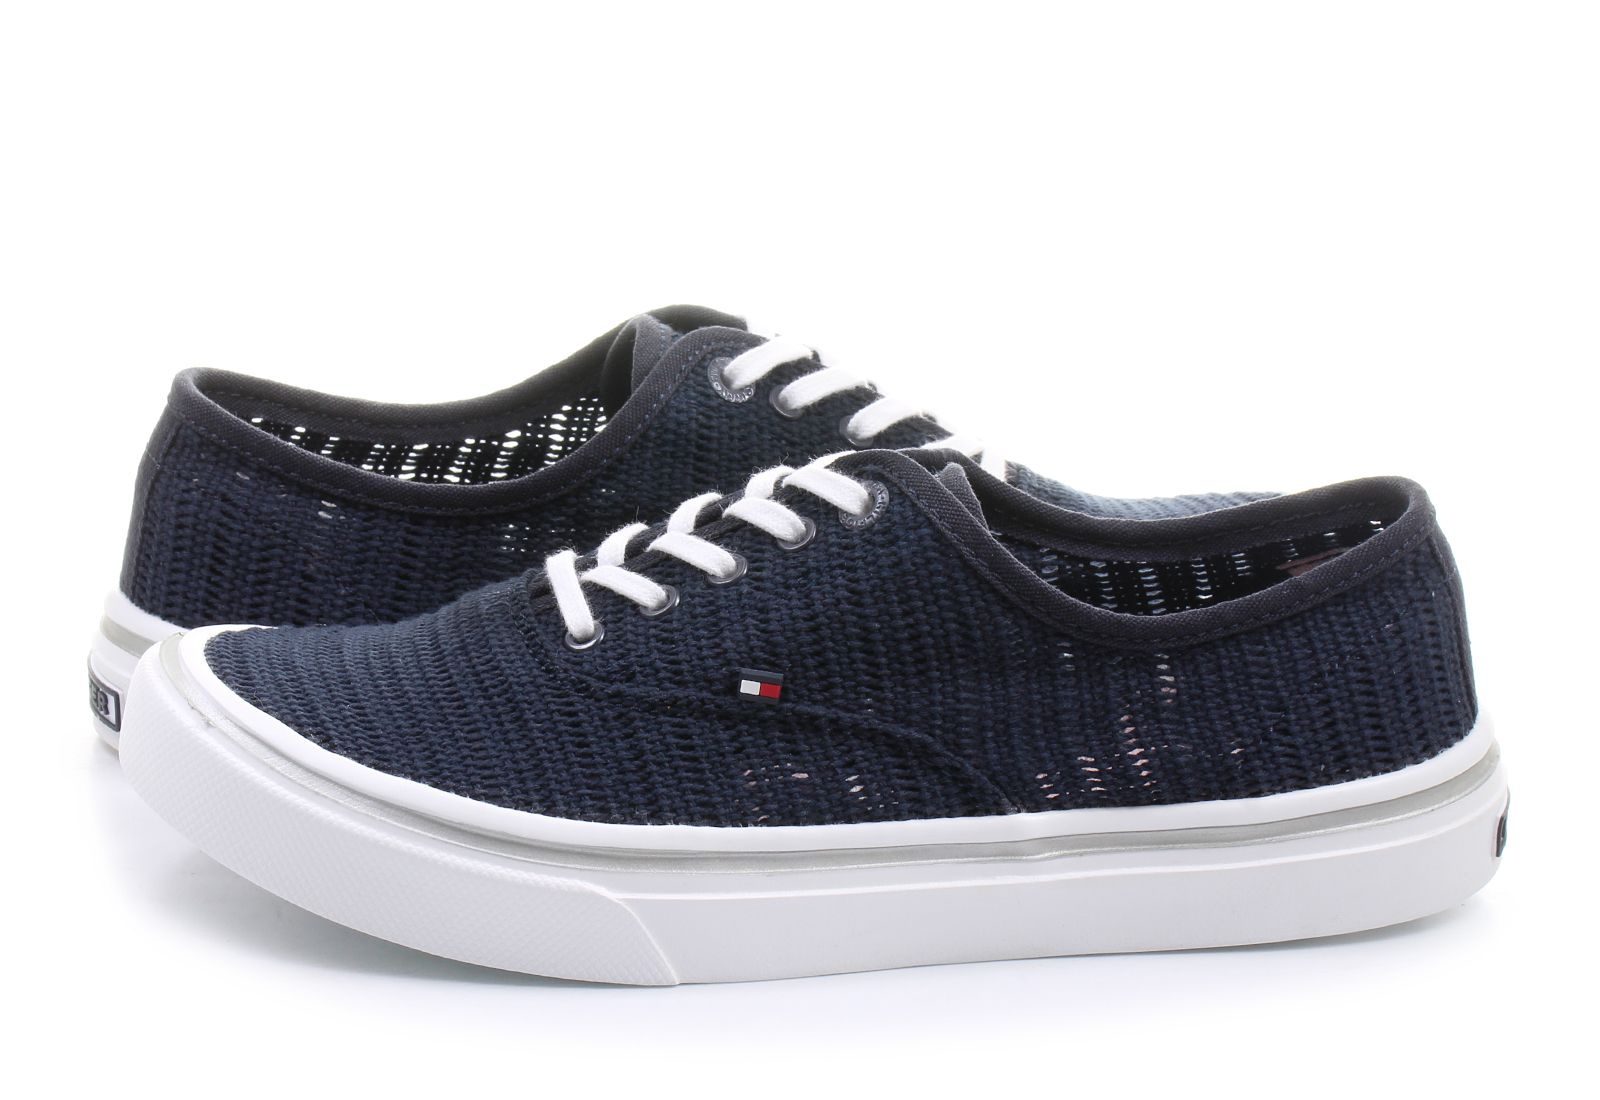 tommy hilfiger shoes mara 3d1 17r 1051 403 online shop for sneakers shoes and boots. Black Bedroom Furniture Sets. Home Design Ideas